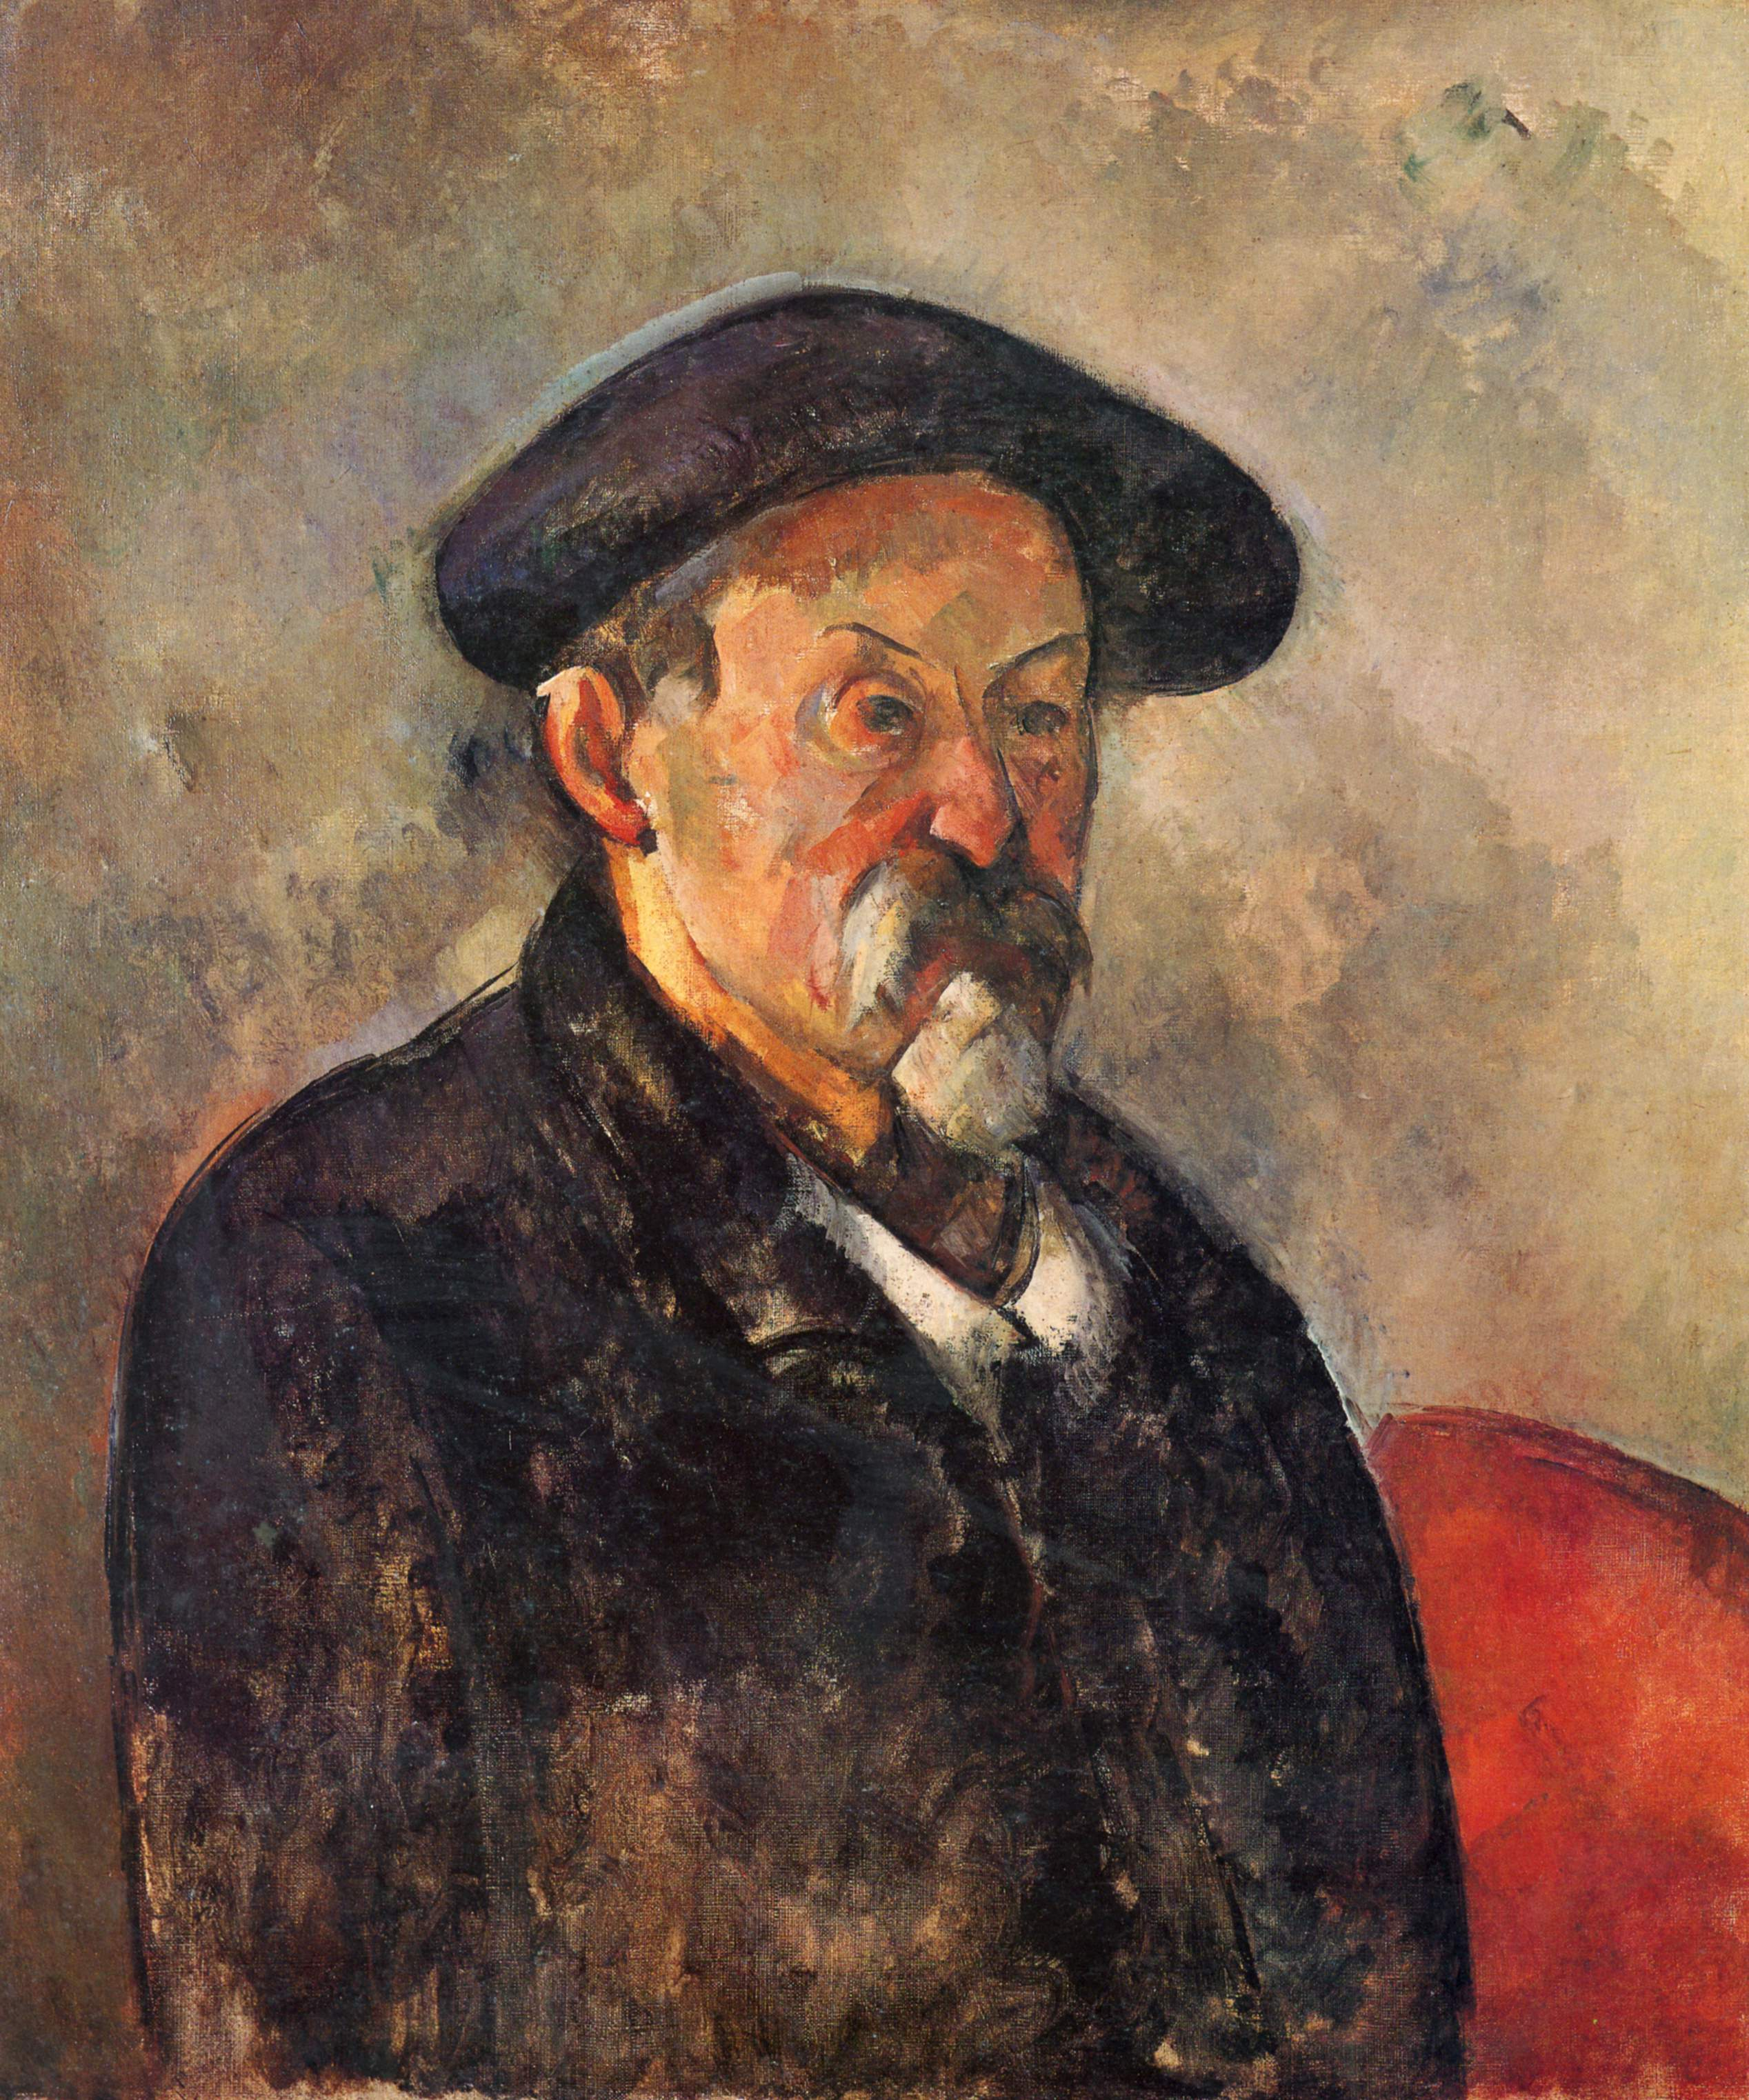 https://uploads3.wikiart.org/images/paul-cezanne/self-portrait-with-beret-1900.jpg